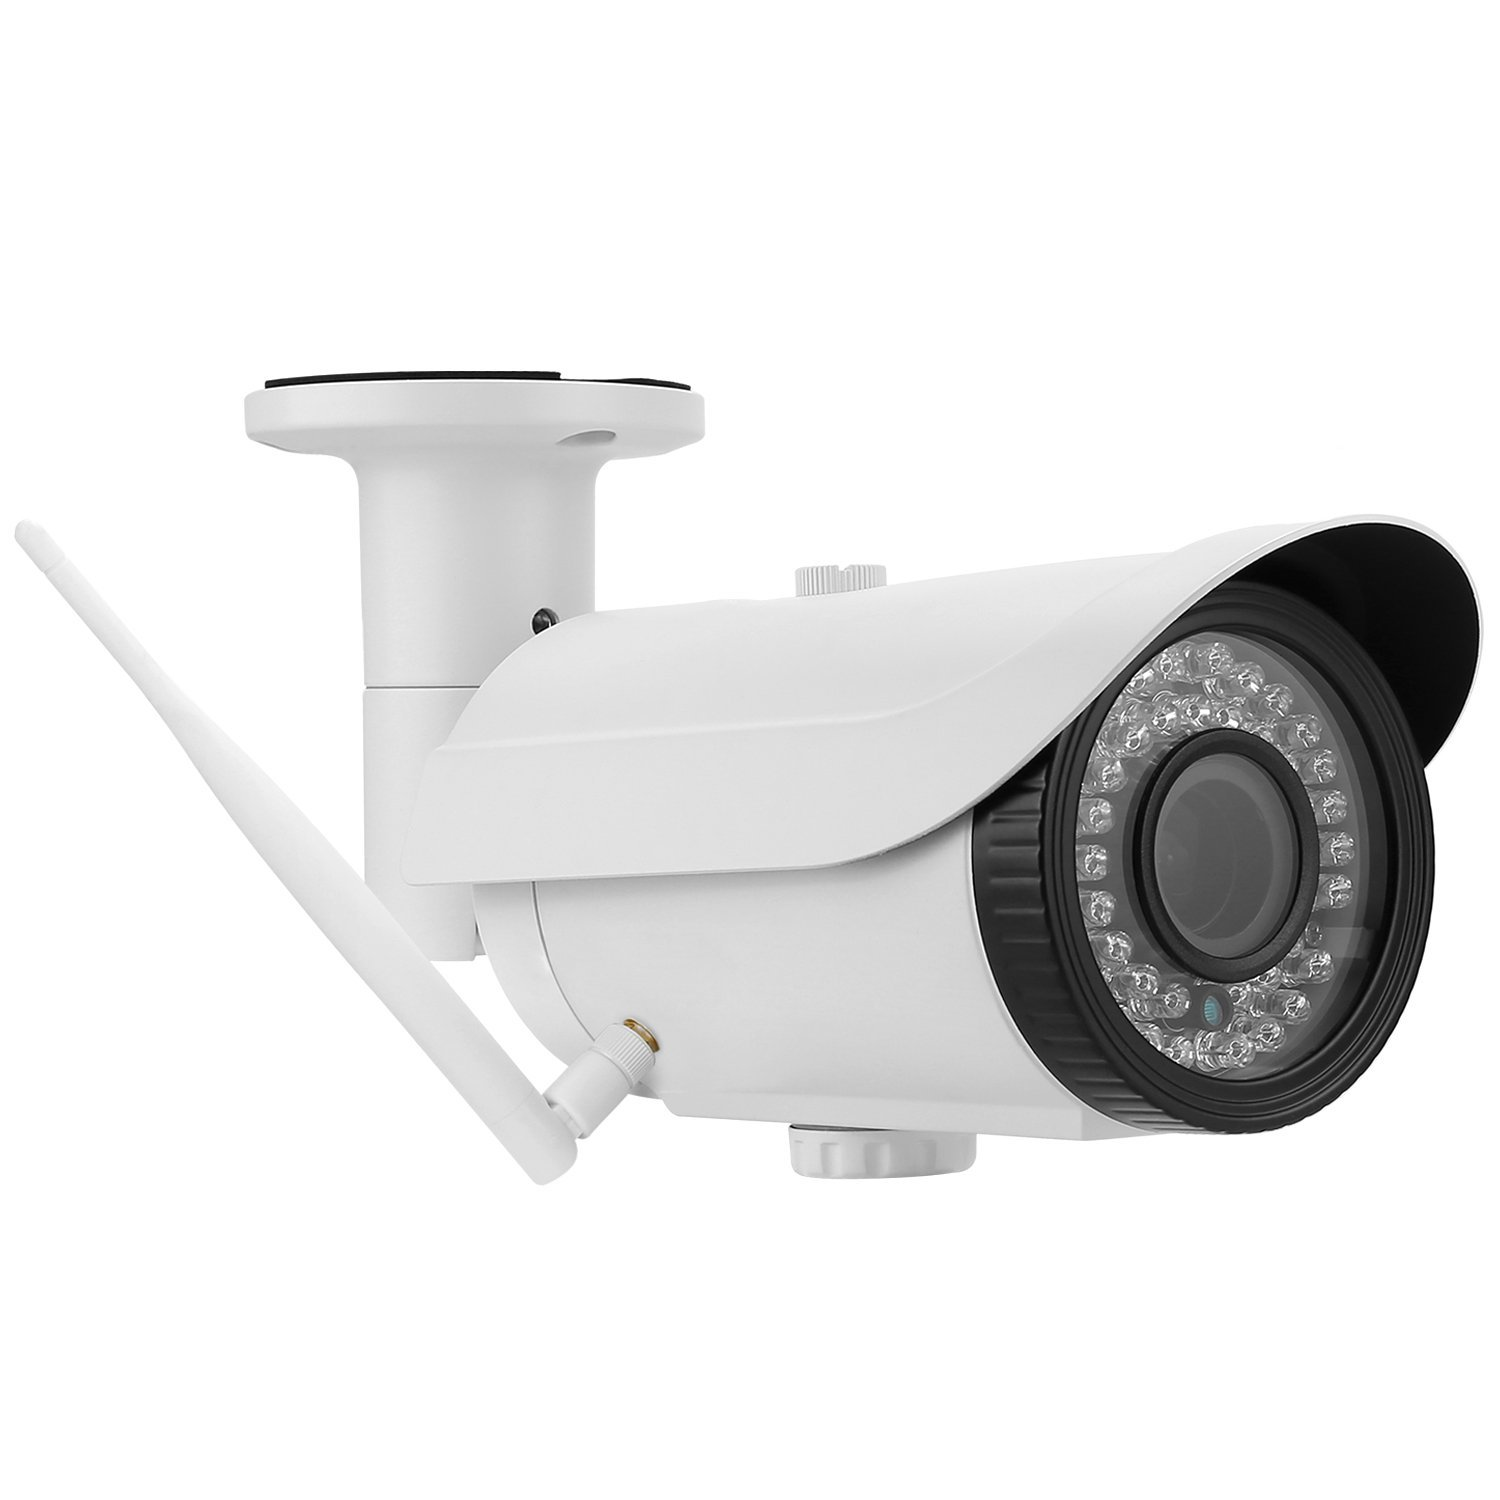 2 IdeaNext 720P HD WIFI Wireless IP Camera P2P Bullet Outdoor IR Night Vision Motion Detection-Waterproof